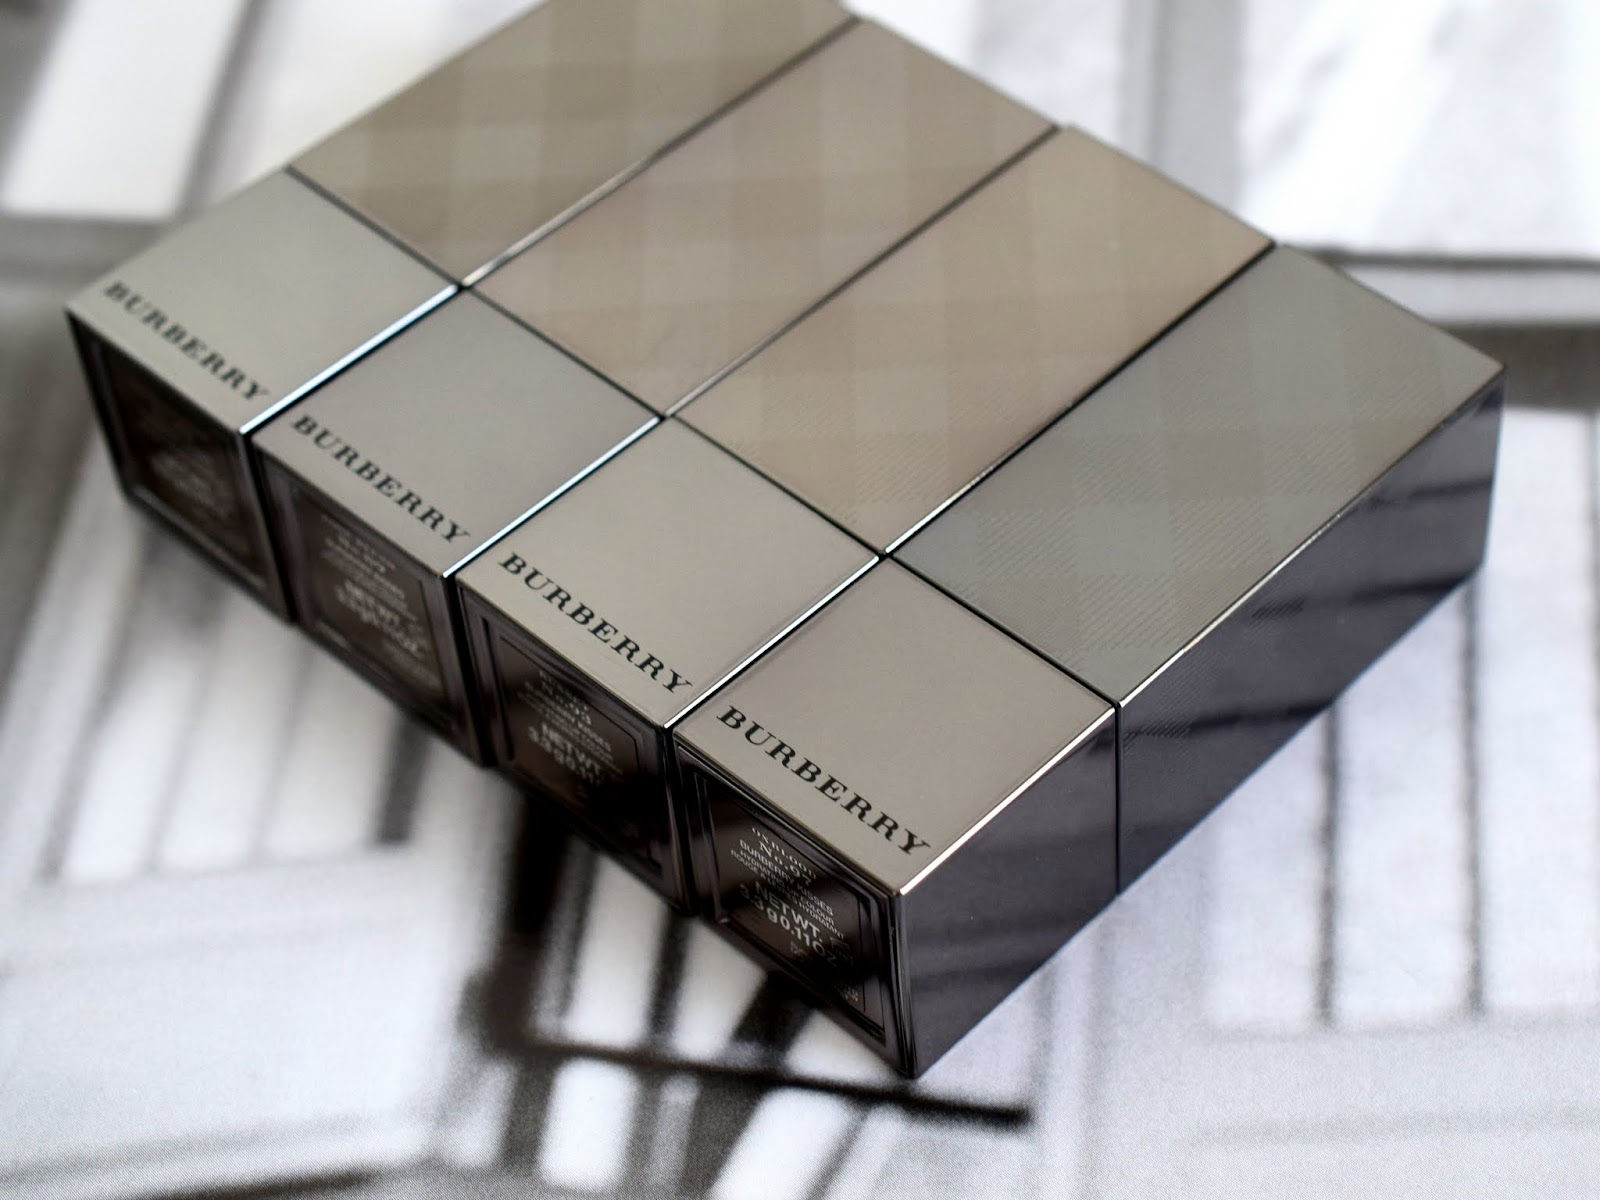 Burberry Kisses: Verpackung